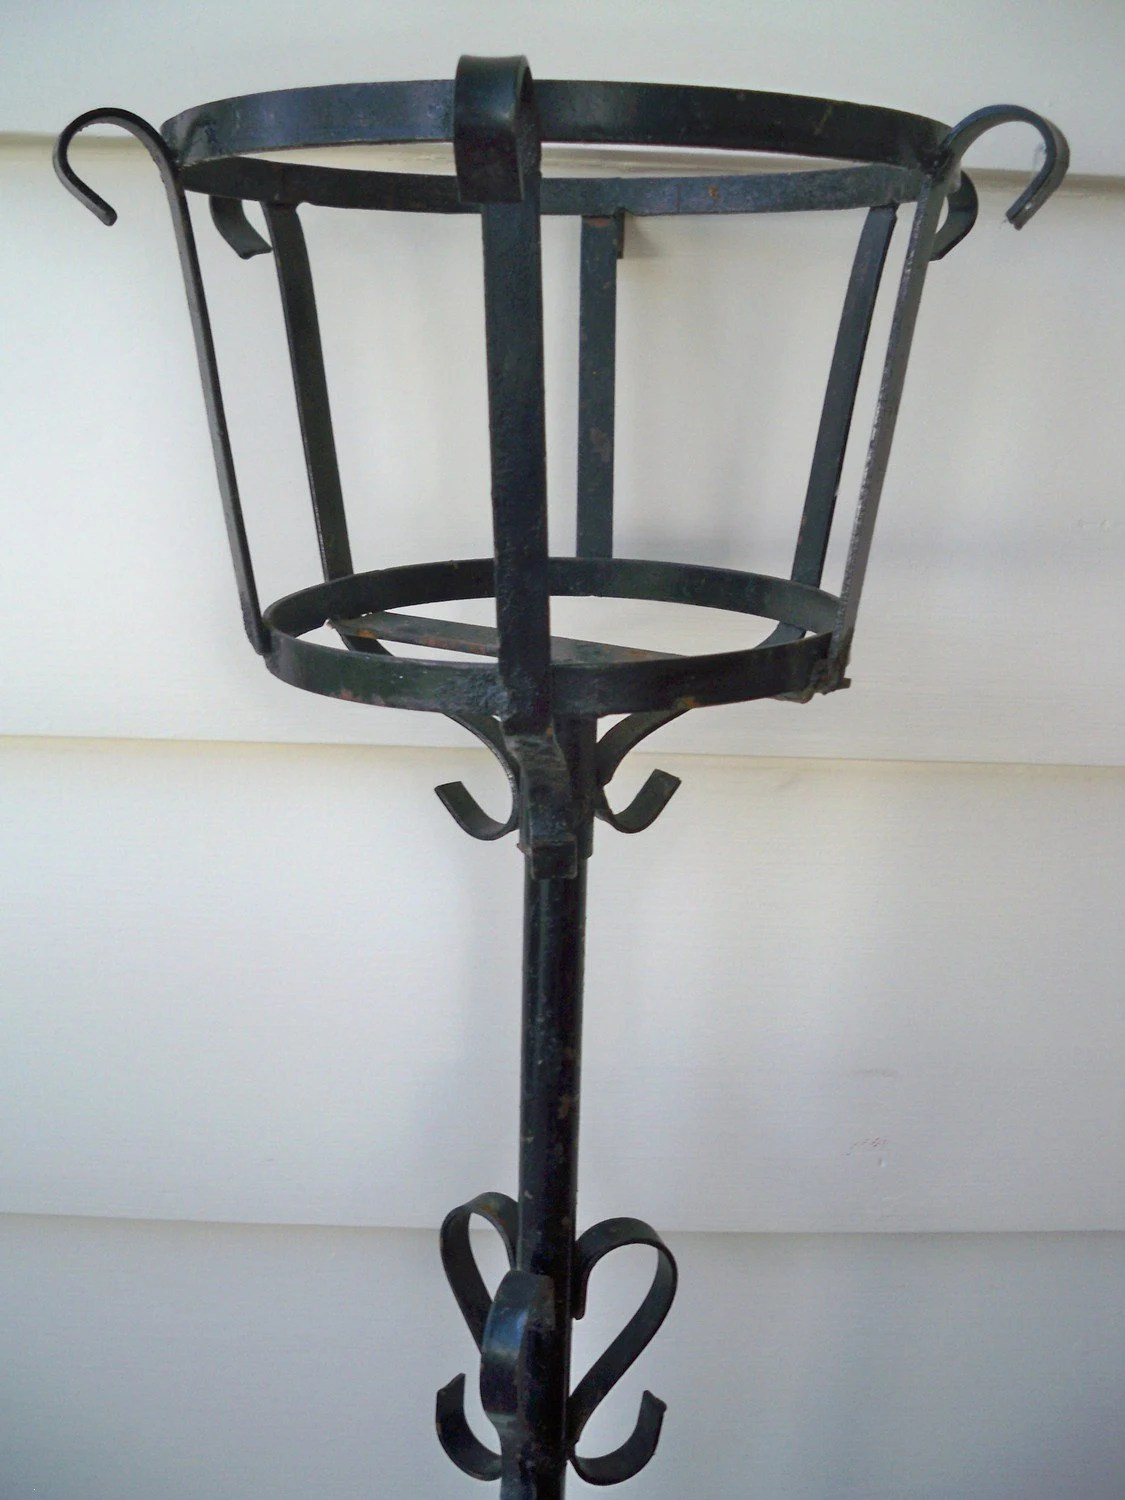 Tall Wrought Iron Plant Stands Vintage Black Wrought Iron Plant Stand